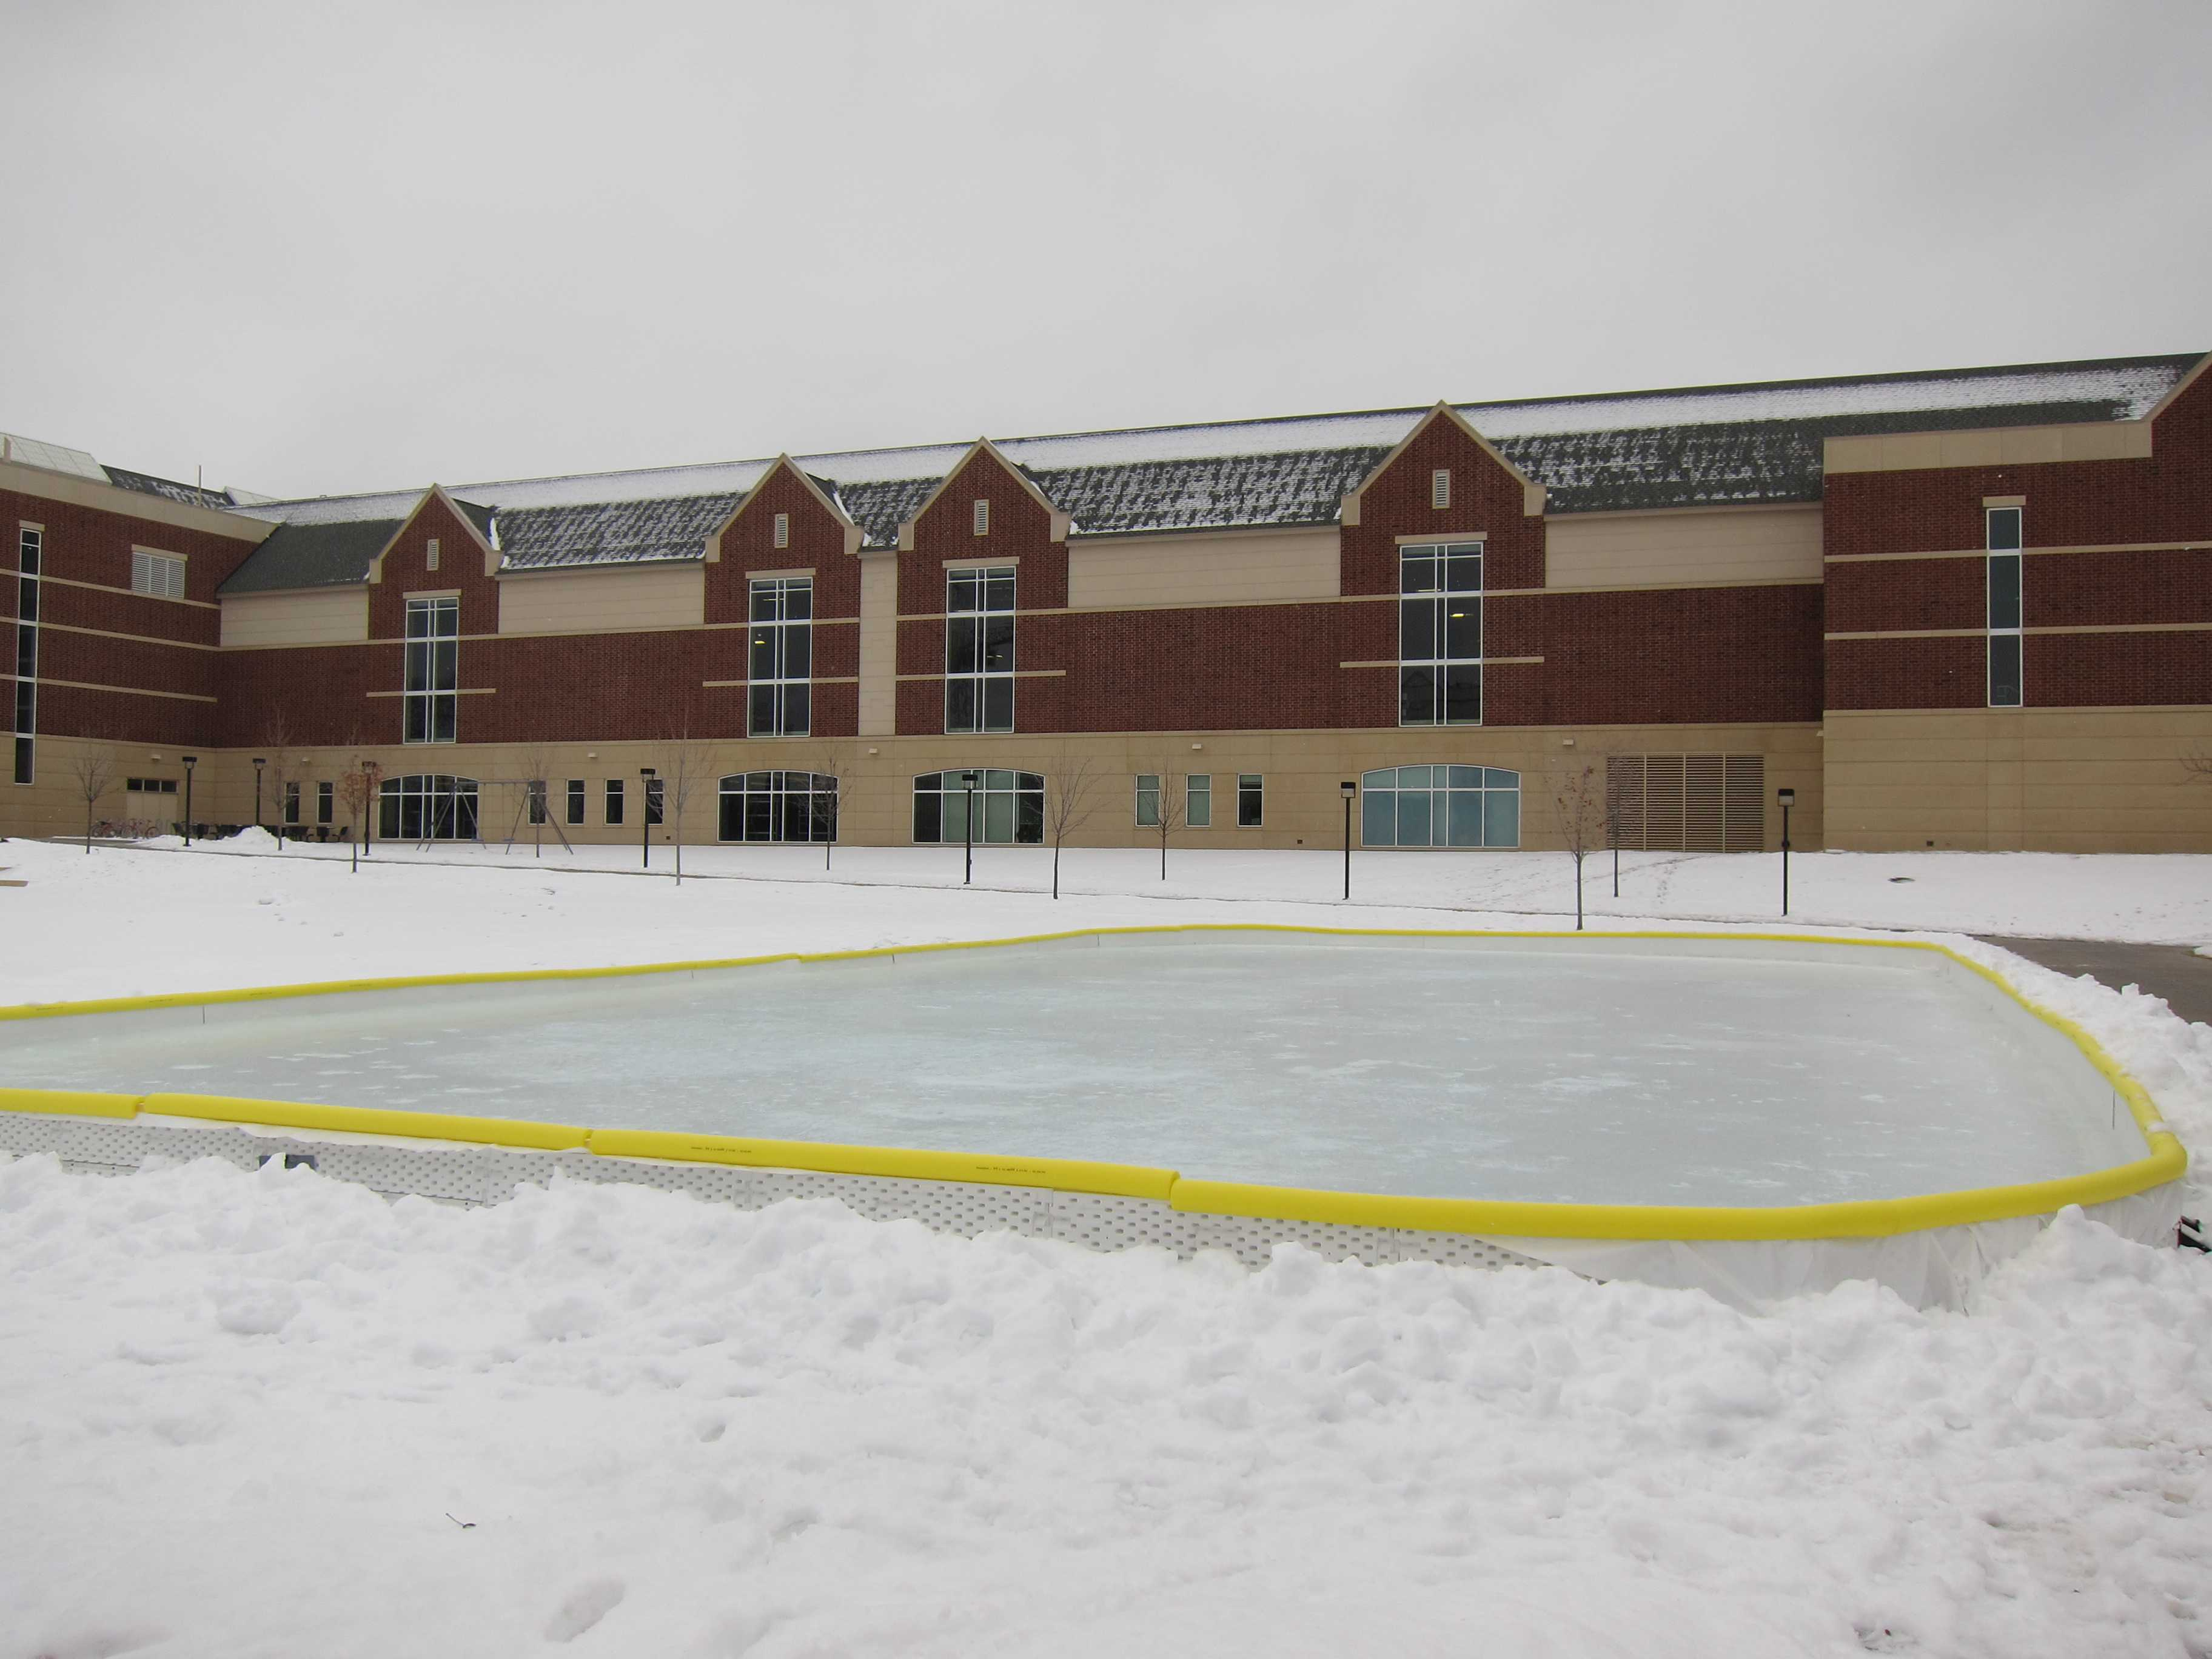 Ice rink opens to mixed reviews